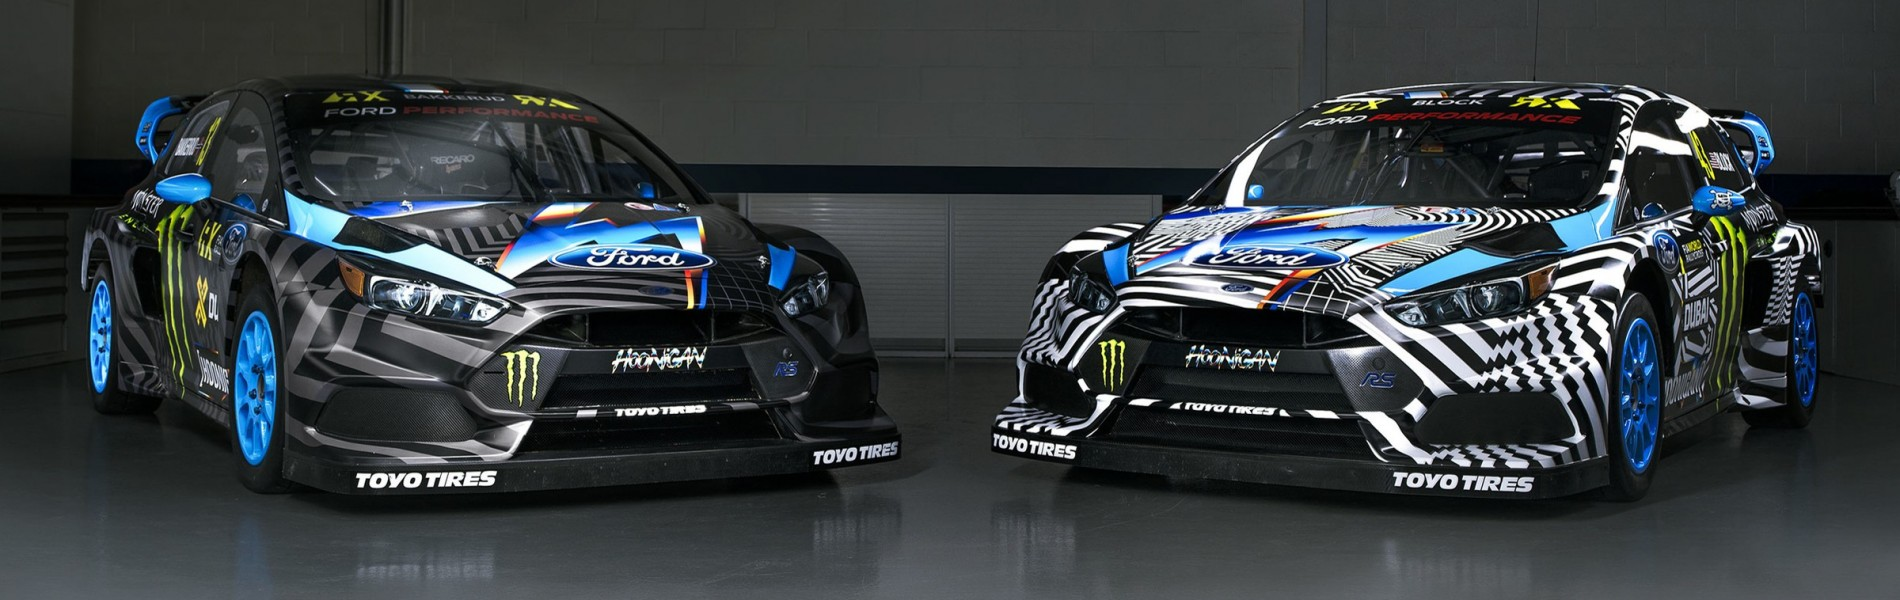 Hoonigan Racing Division 2016 World RX Livery designed by Felipe Pantone